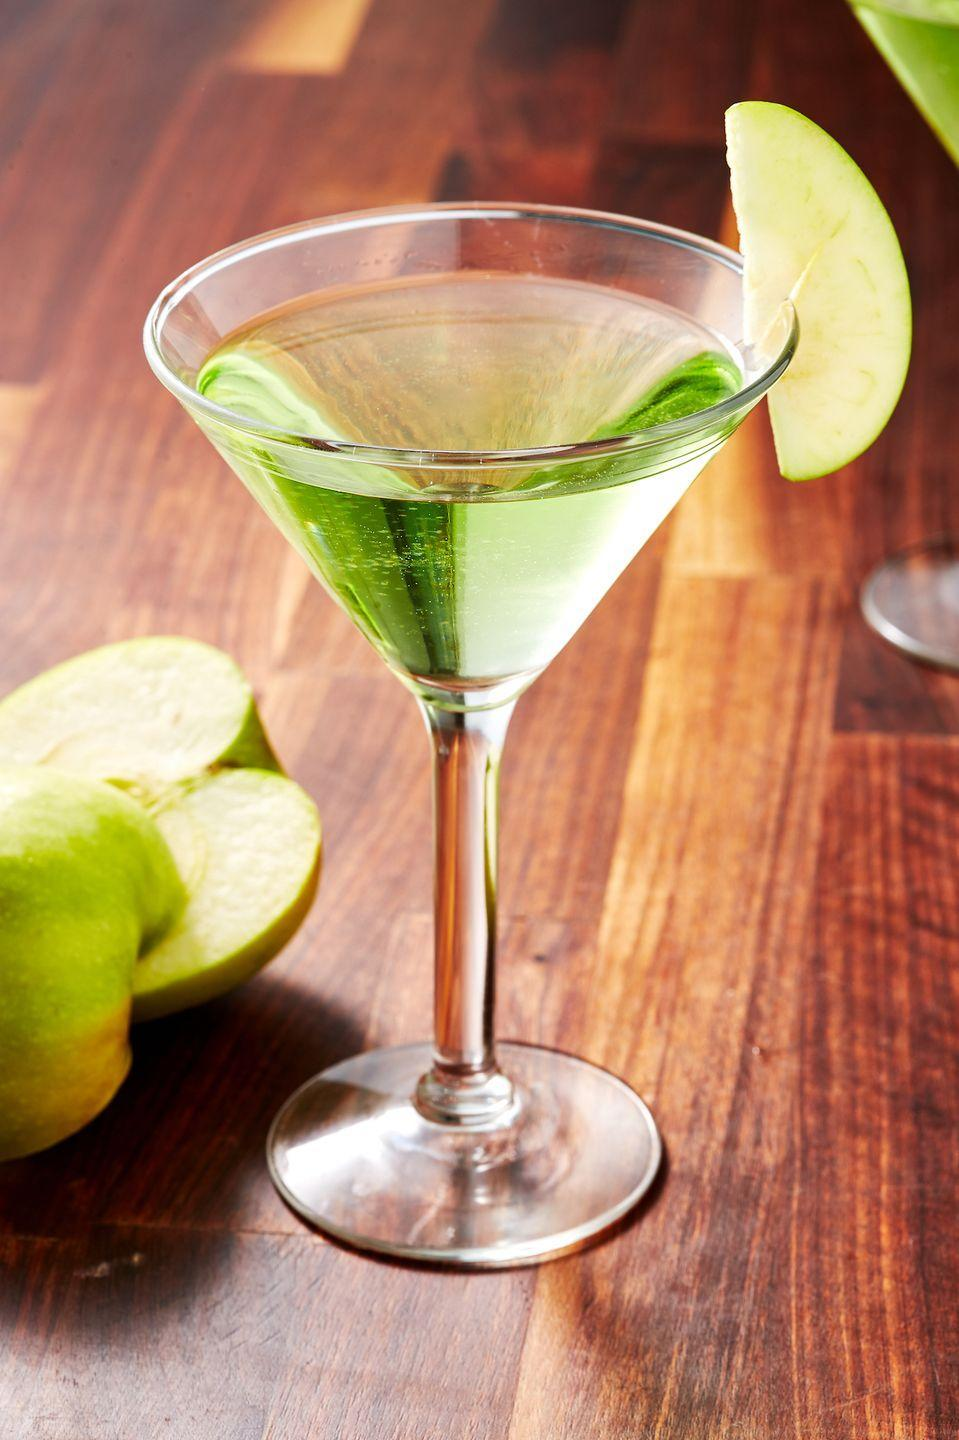 """<p>For the apple of your eye. </p><p>Get the recipe from <a href=""""https://www.delish.com/cooking/recipe-ideas/a28711920/appletini-apple-martini-recipe/"""" rel=""""nofollow noopener"""" target=""""_blank"""" data-ylk=""""slk:Delish"""" class=""""link rapid-noclick-resp"""">Delish</a>.</p>"""